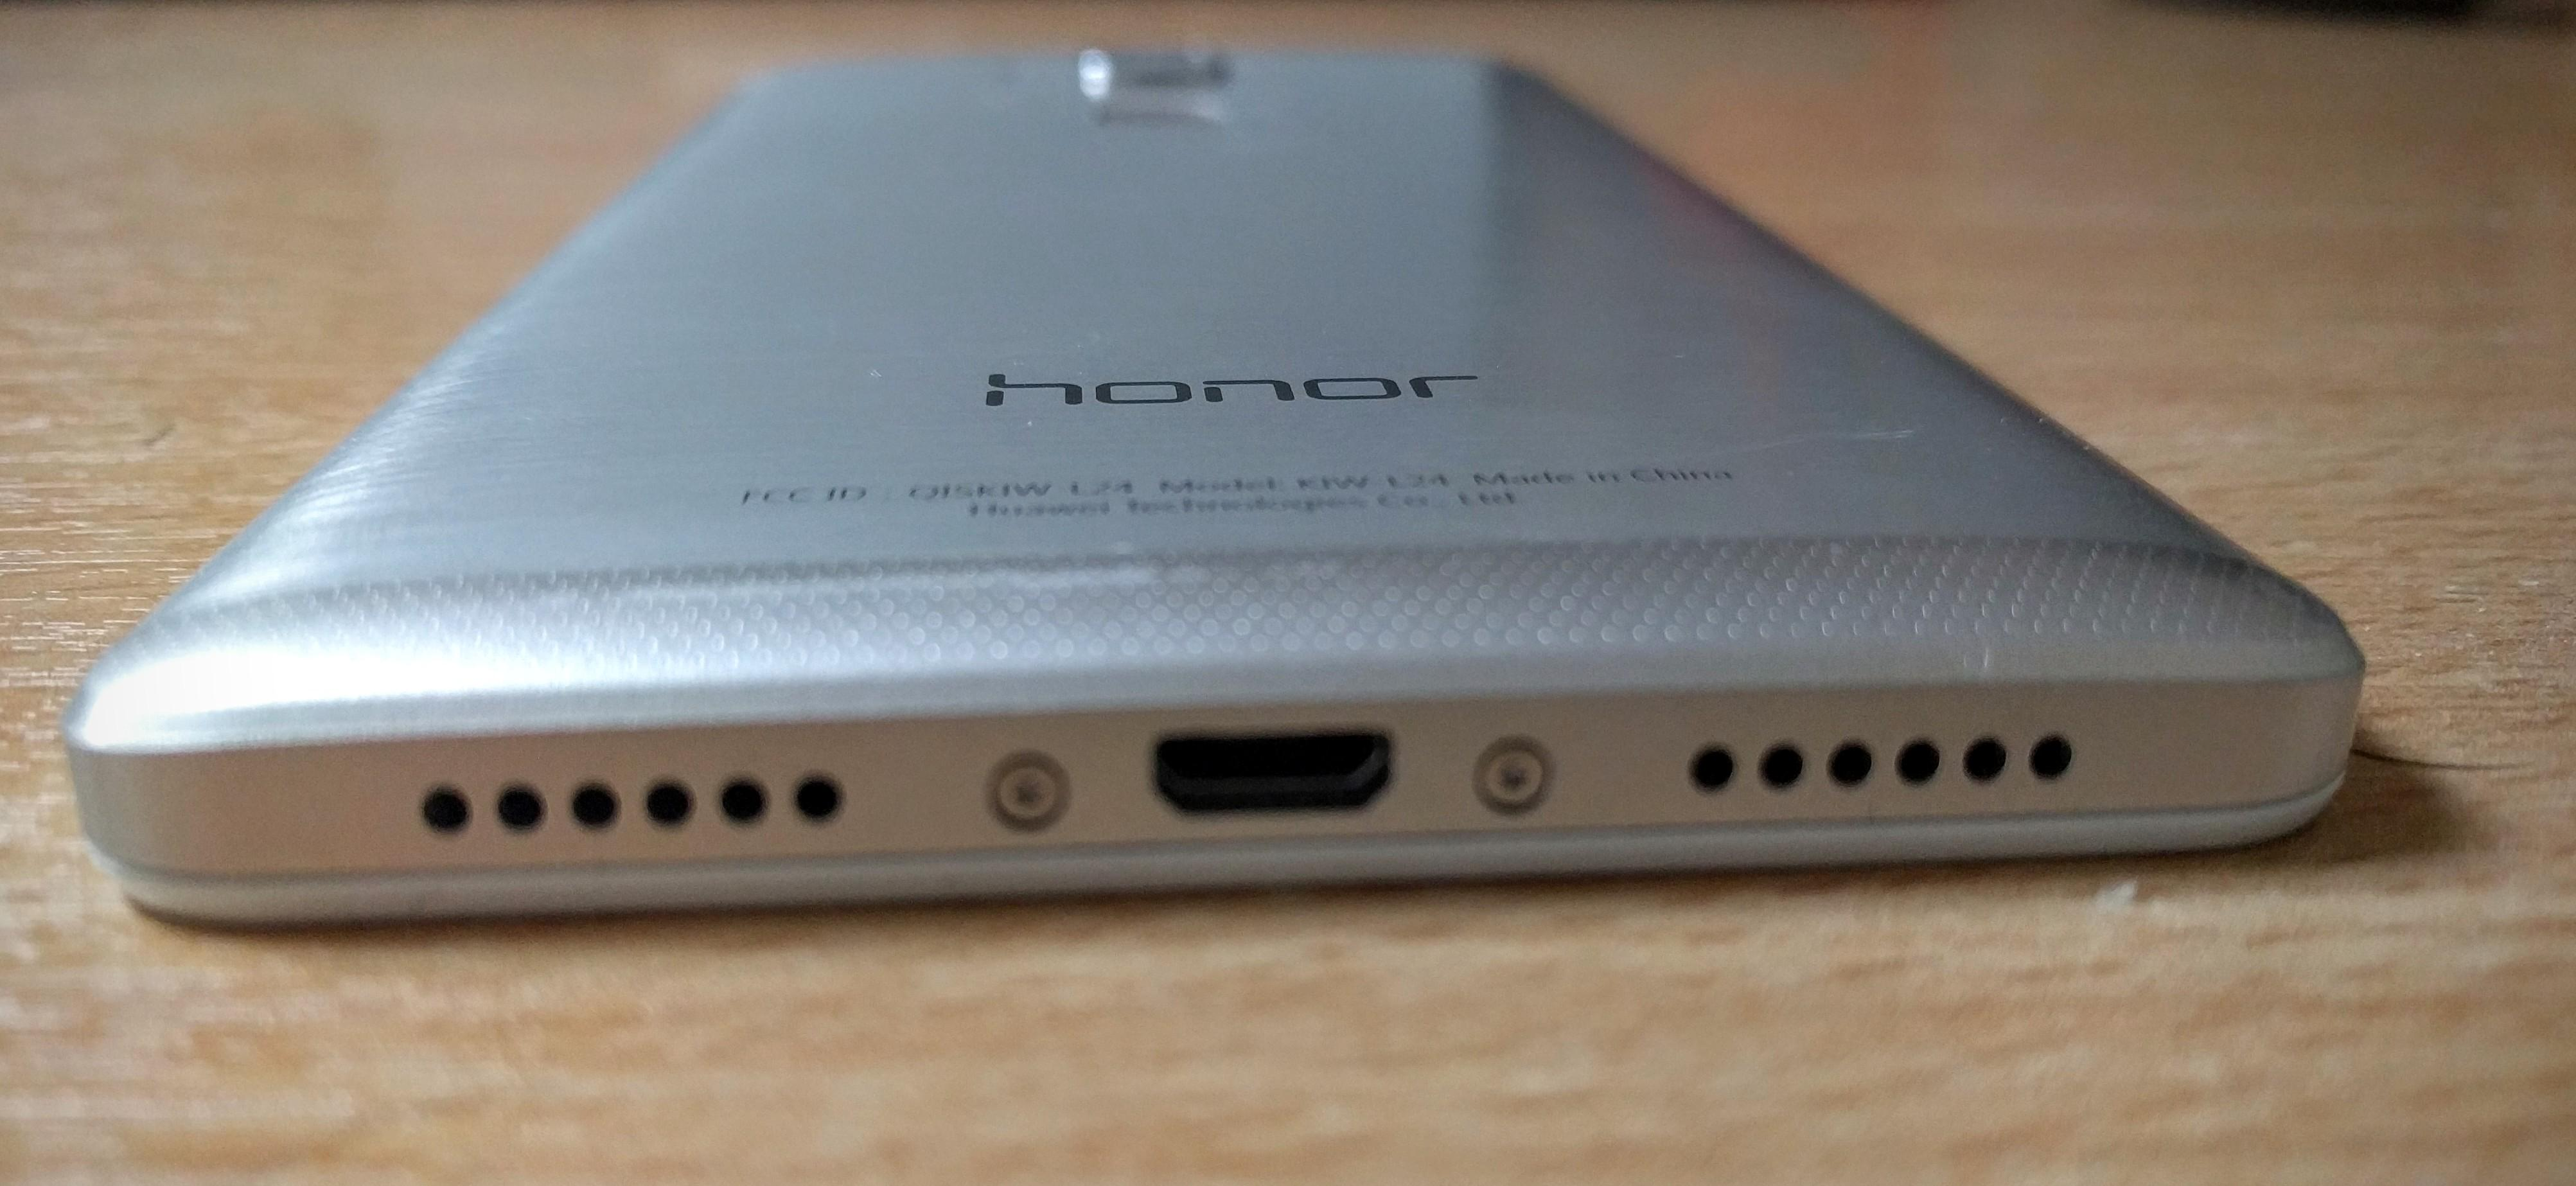 Honor 5X Review Specs